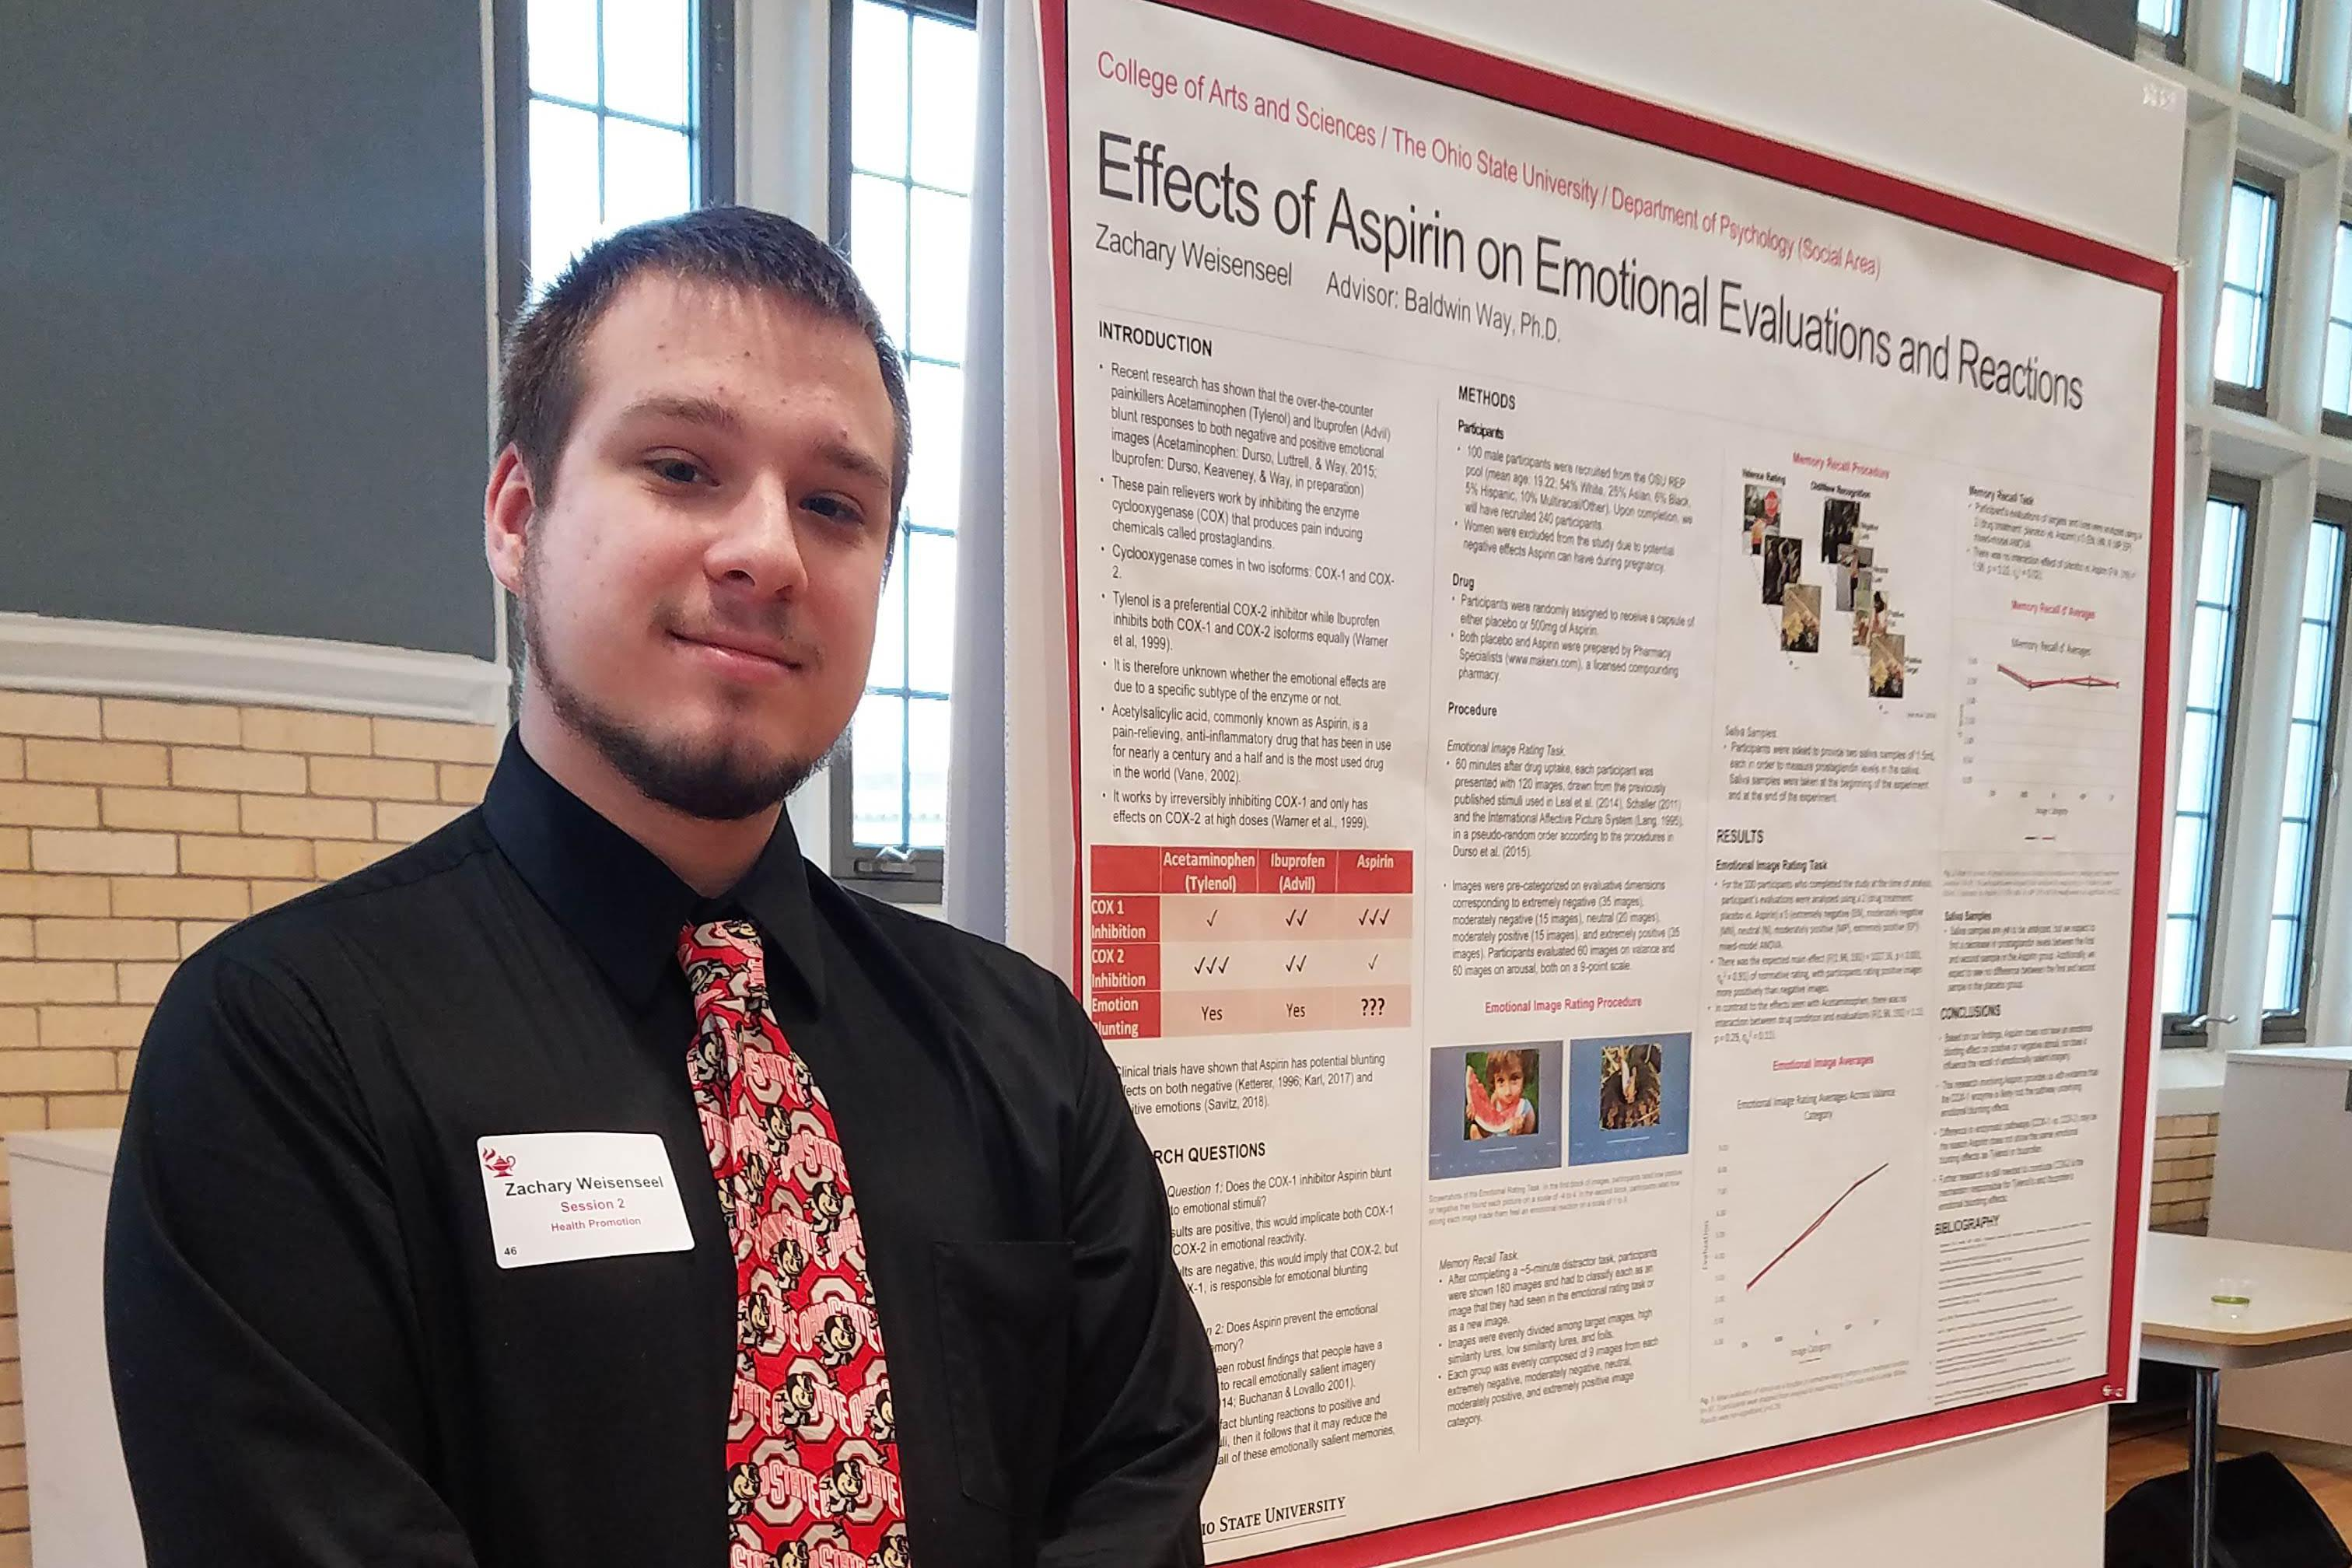 Zachary Weisensell in front of a science poster presentation